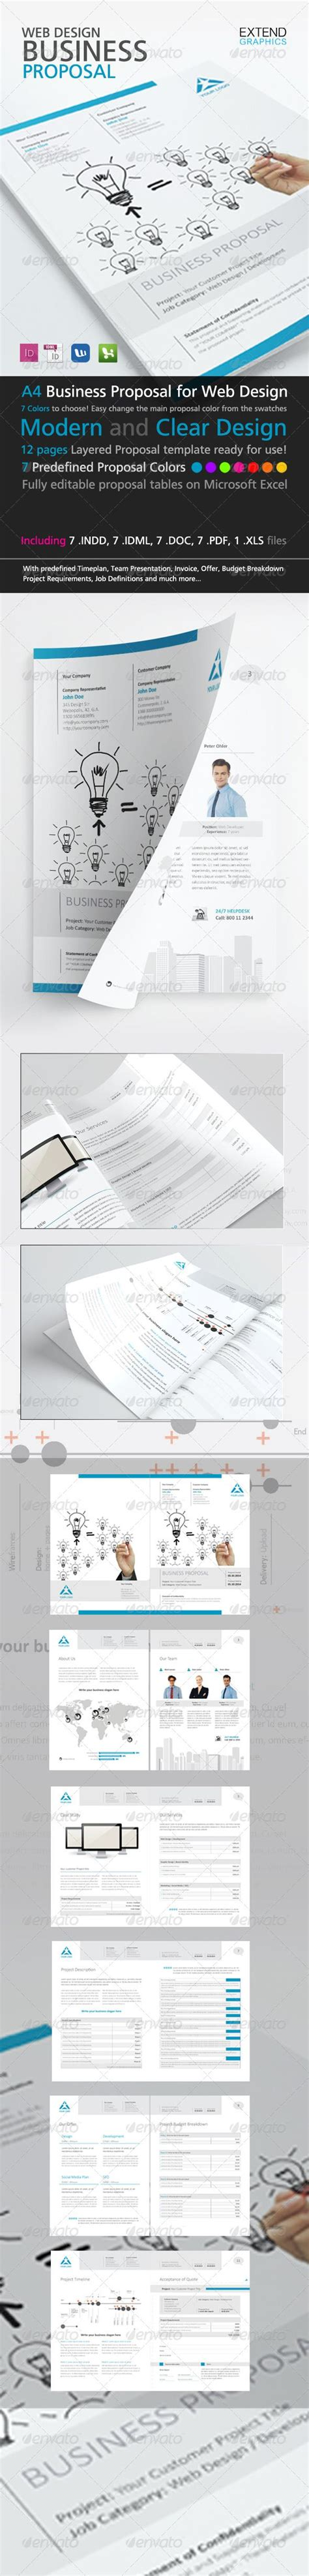 design brief proposal 19 best creative brief exles images on pinterest